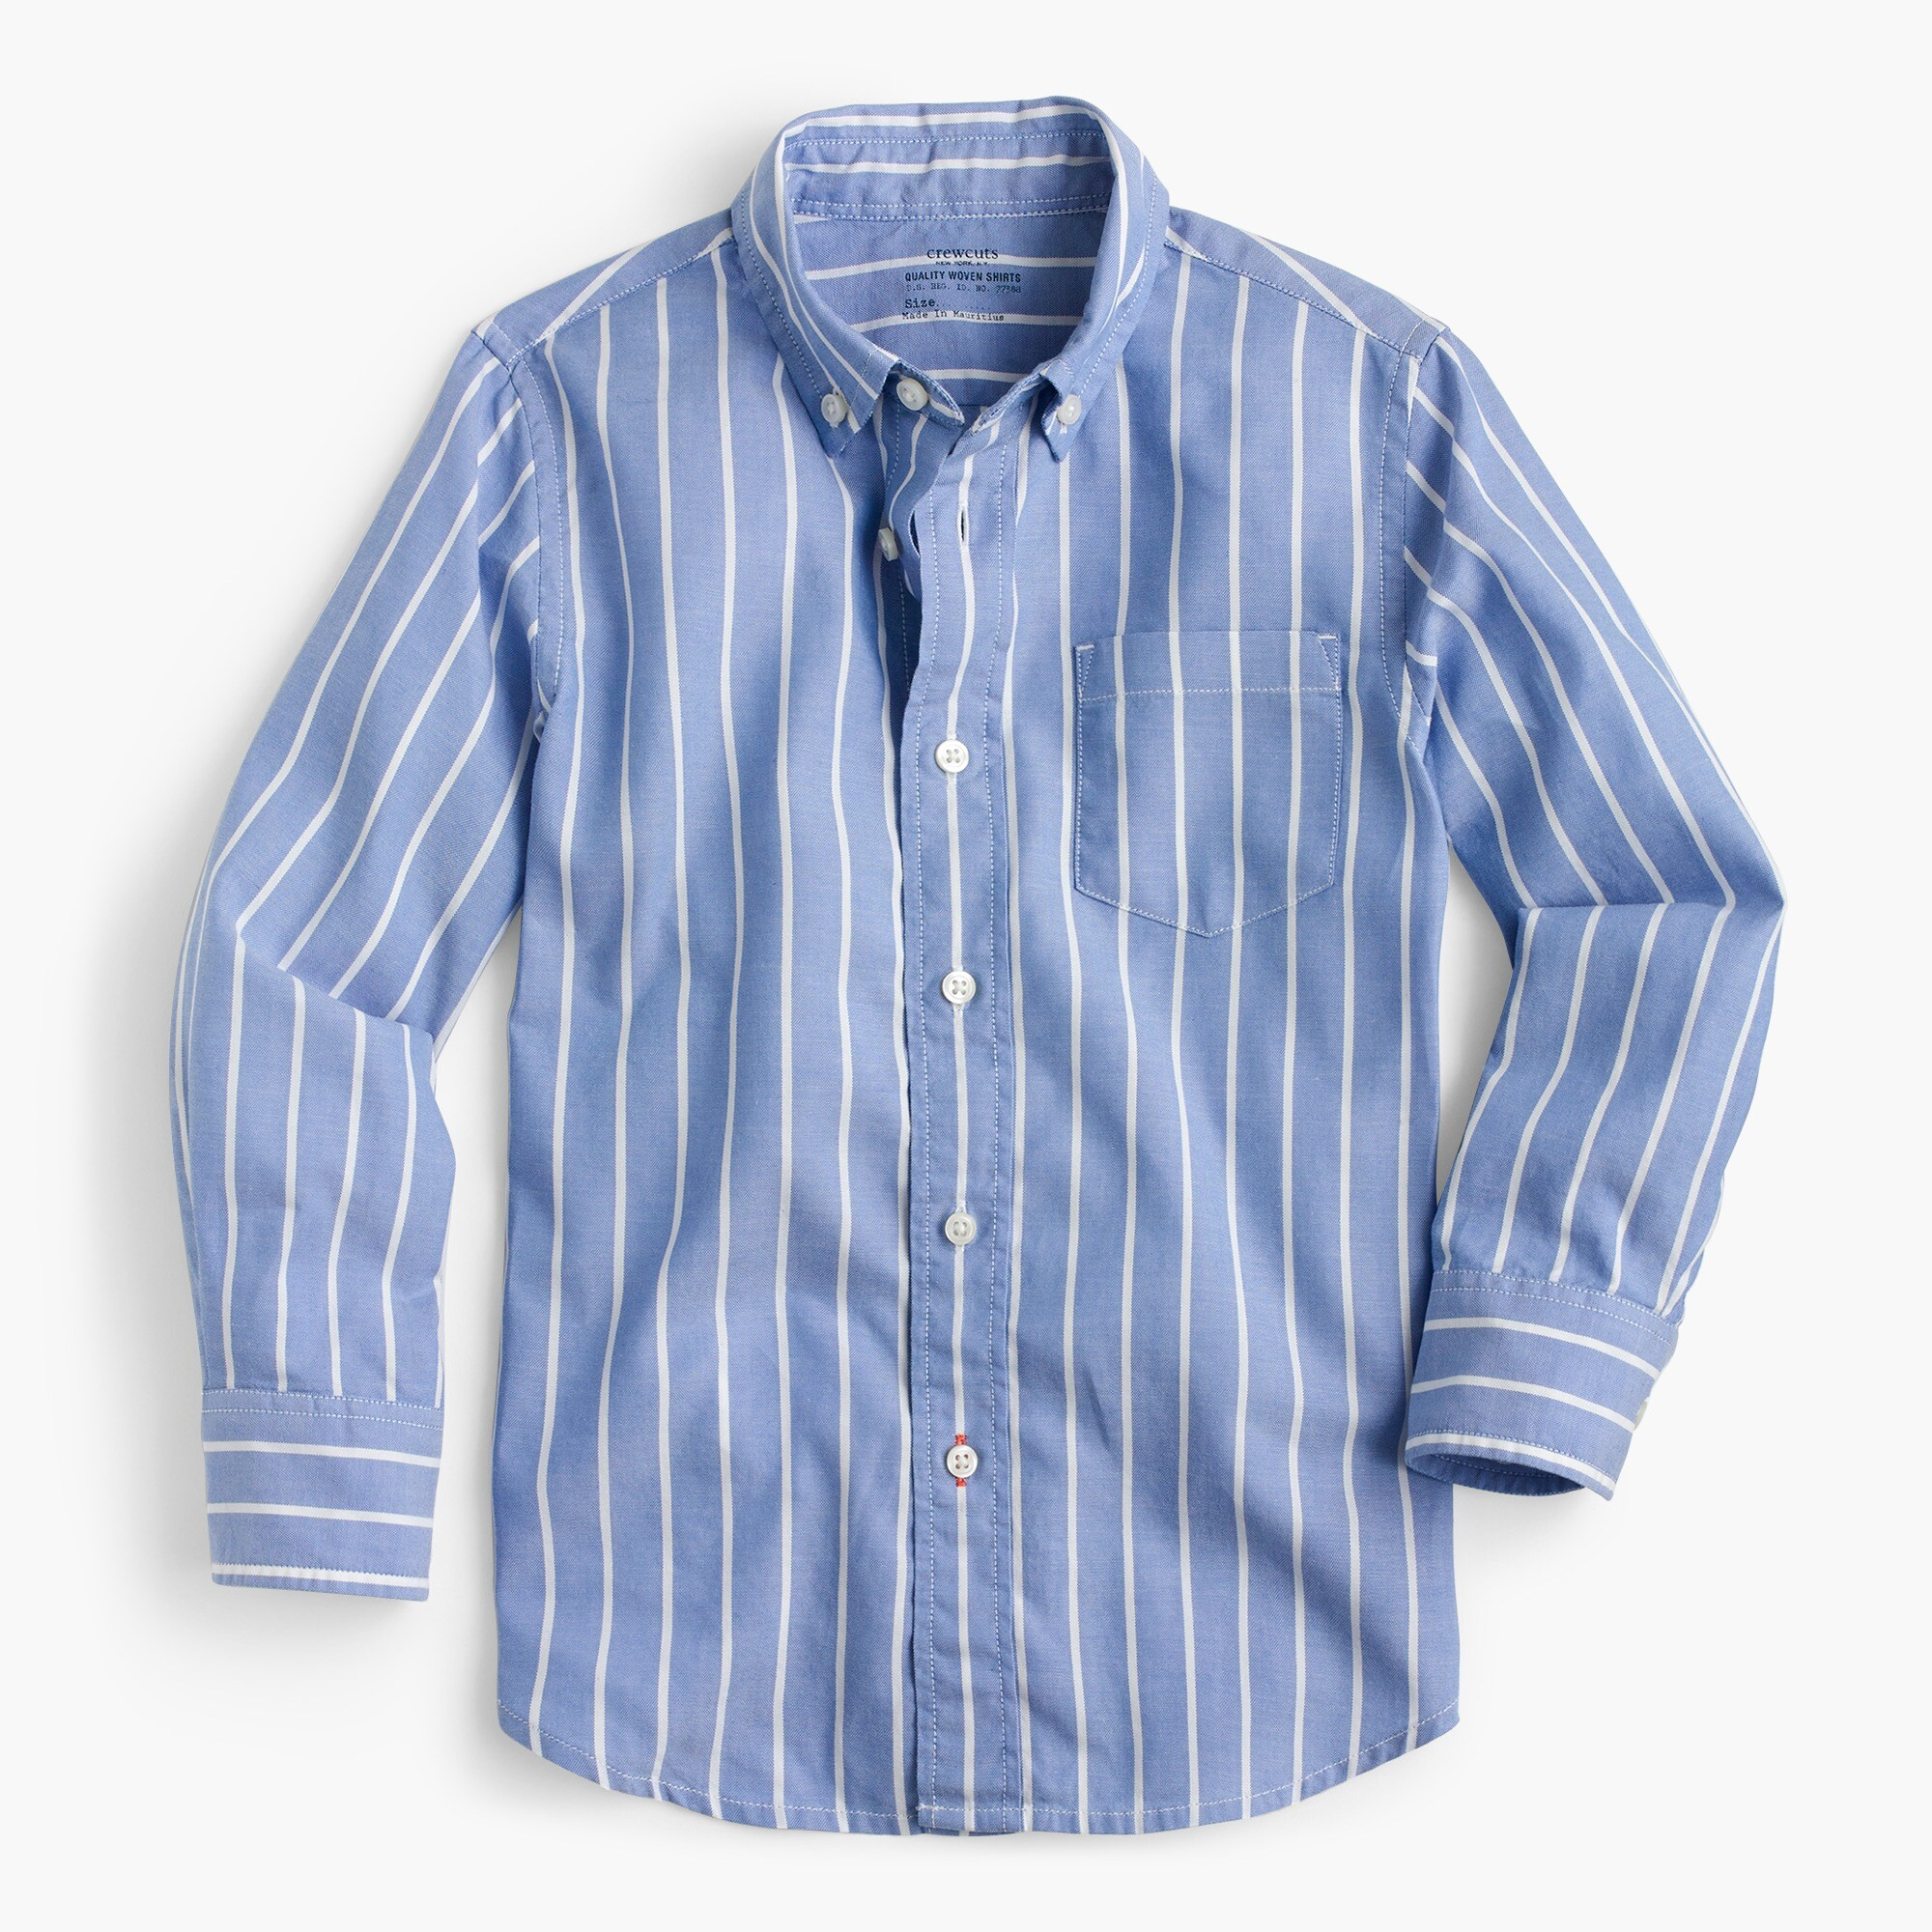 Image 1 for Kids' oxford shirt in classic stripe